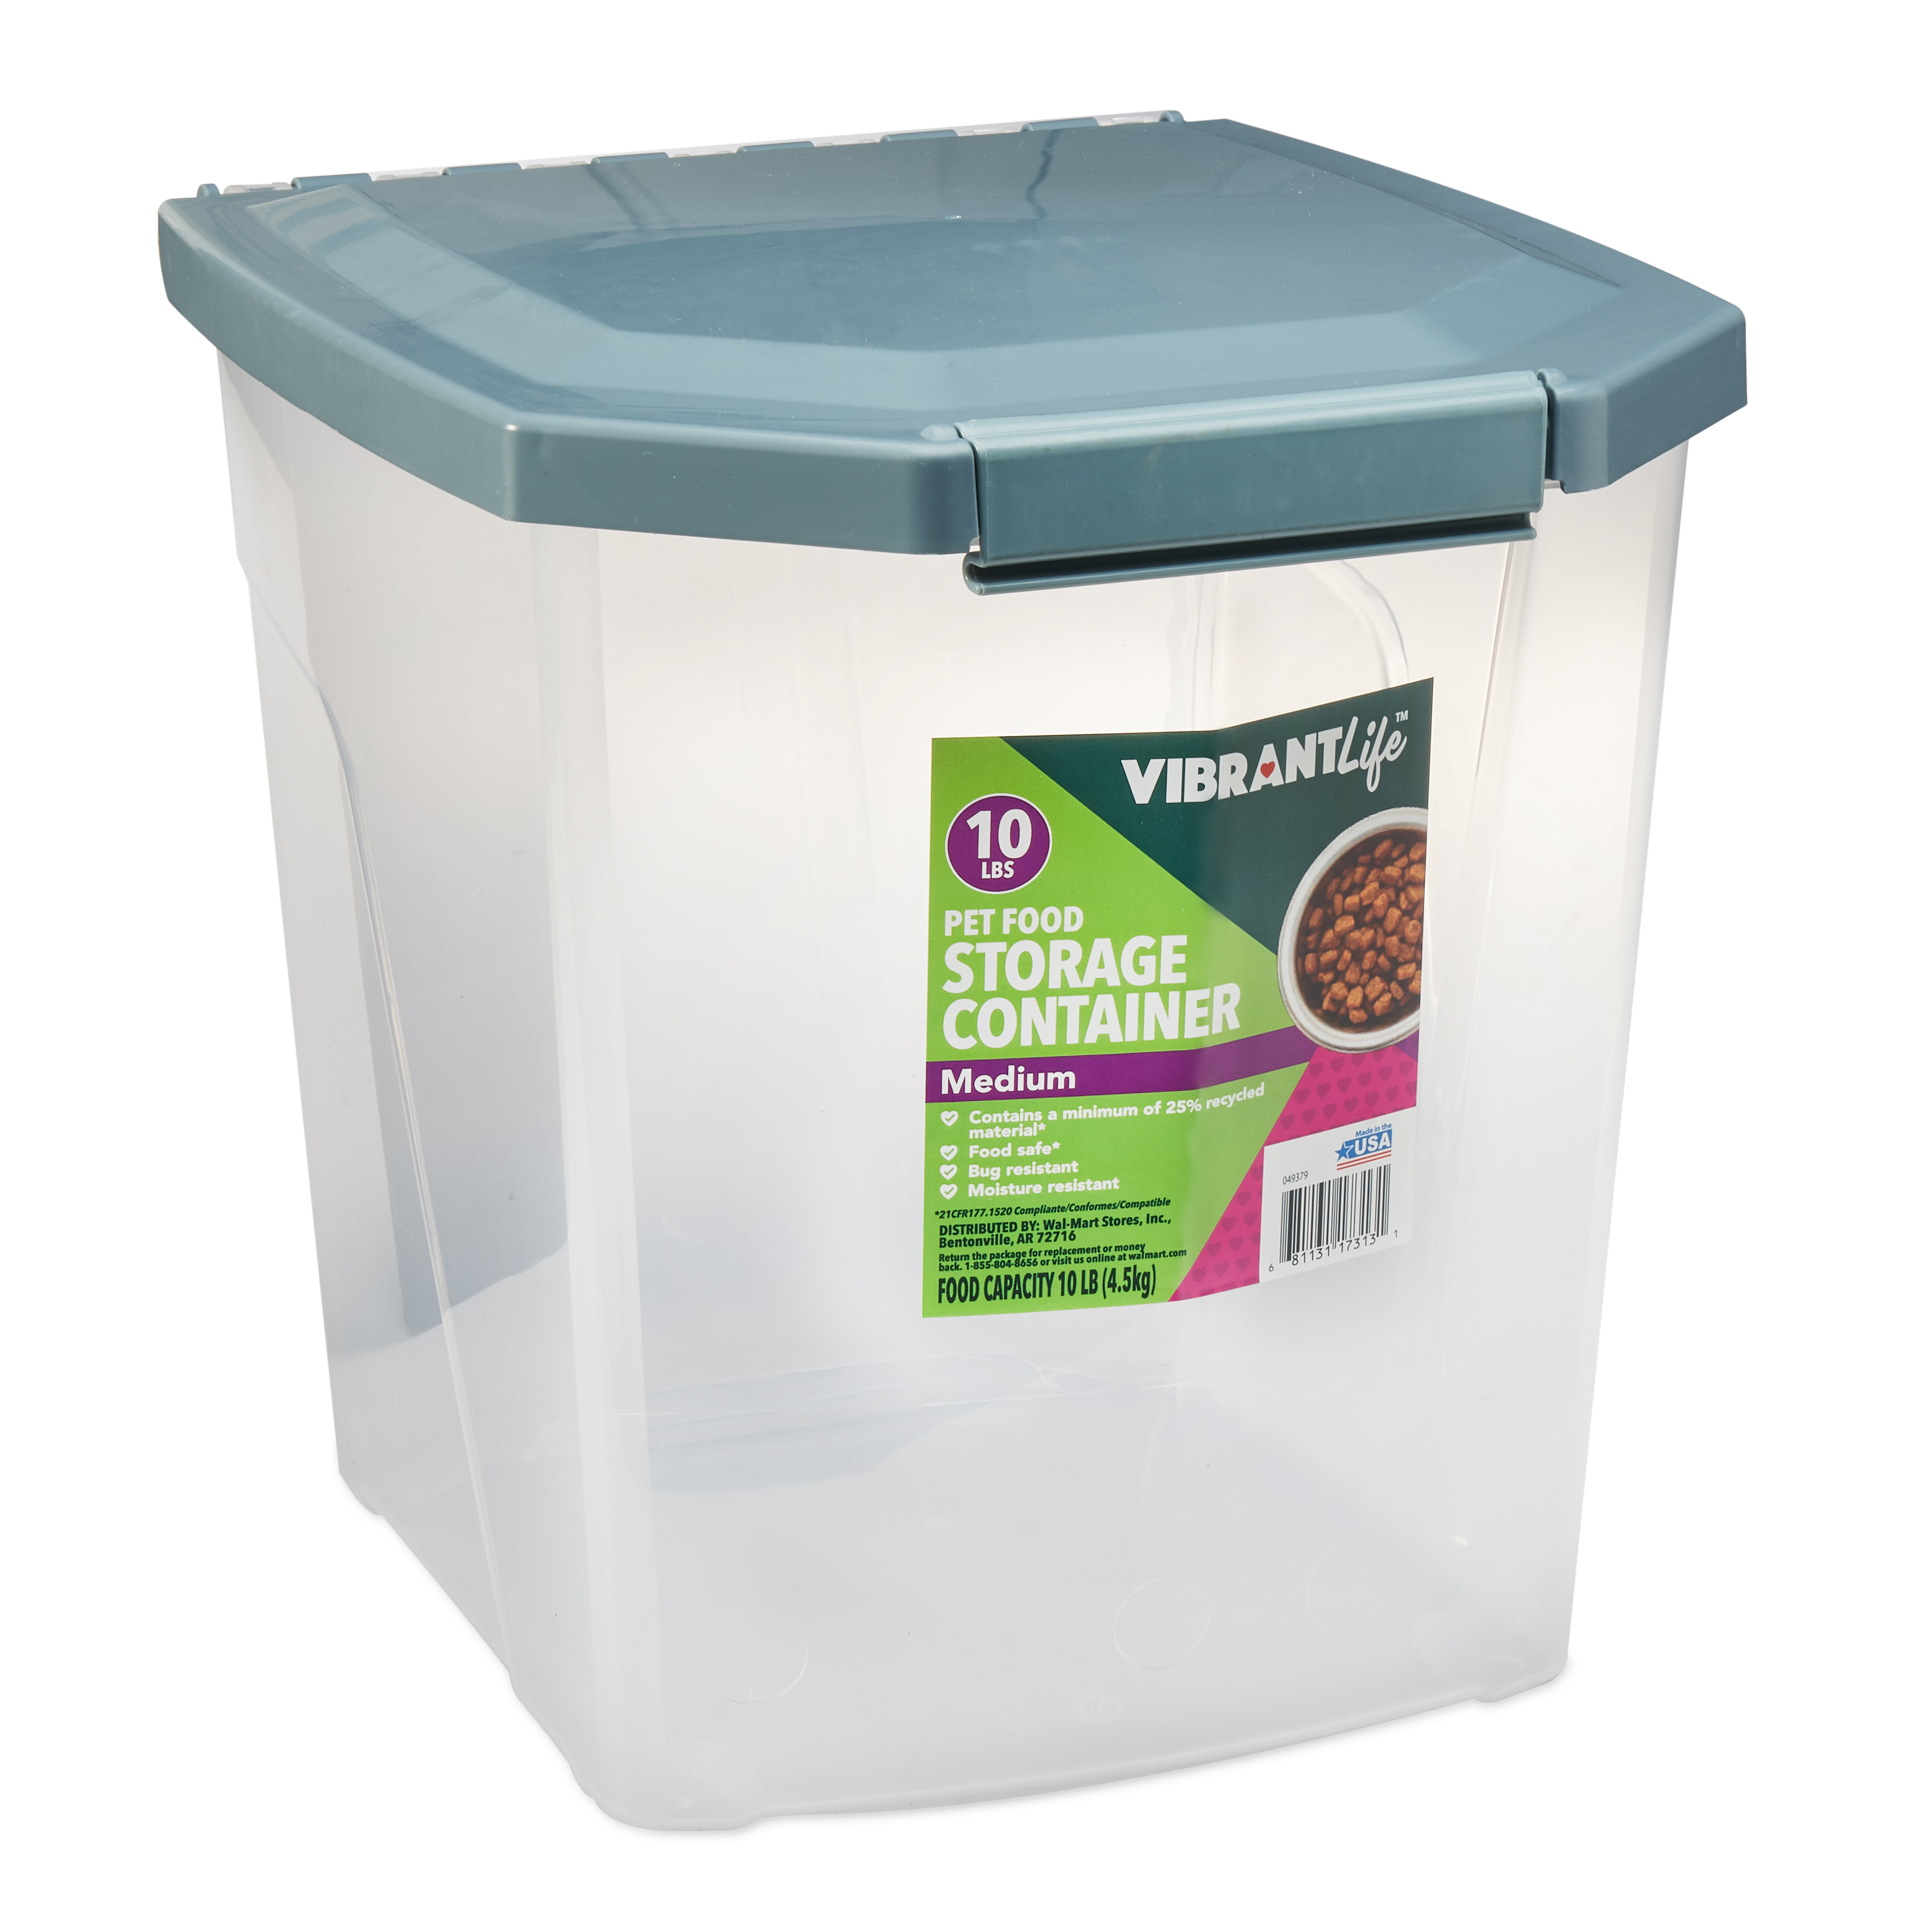 Vibrant Life Pet Food Storage Container, Medium, 10 lb